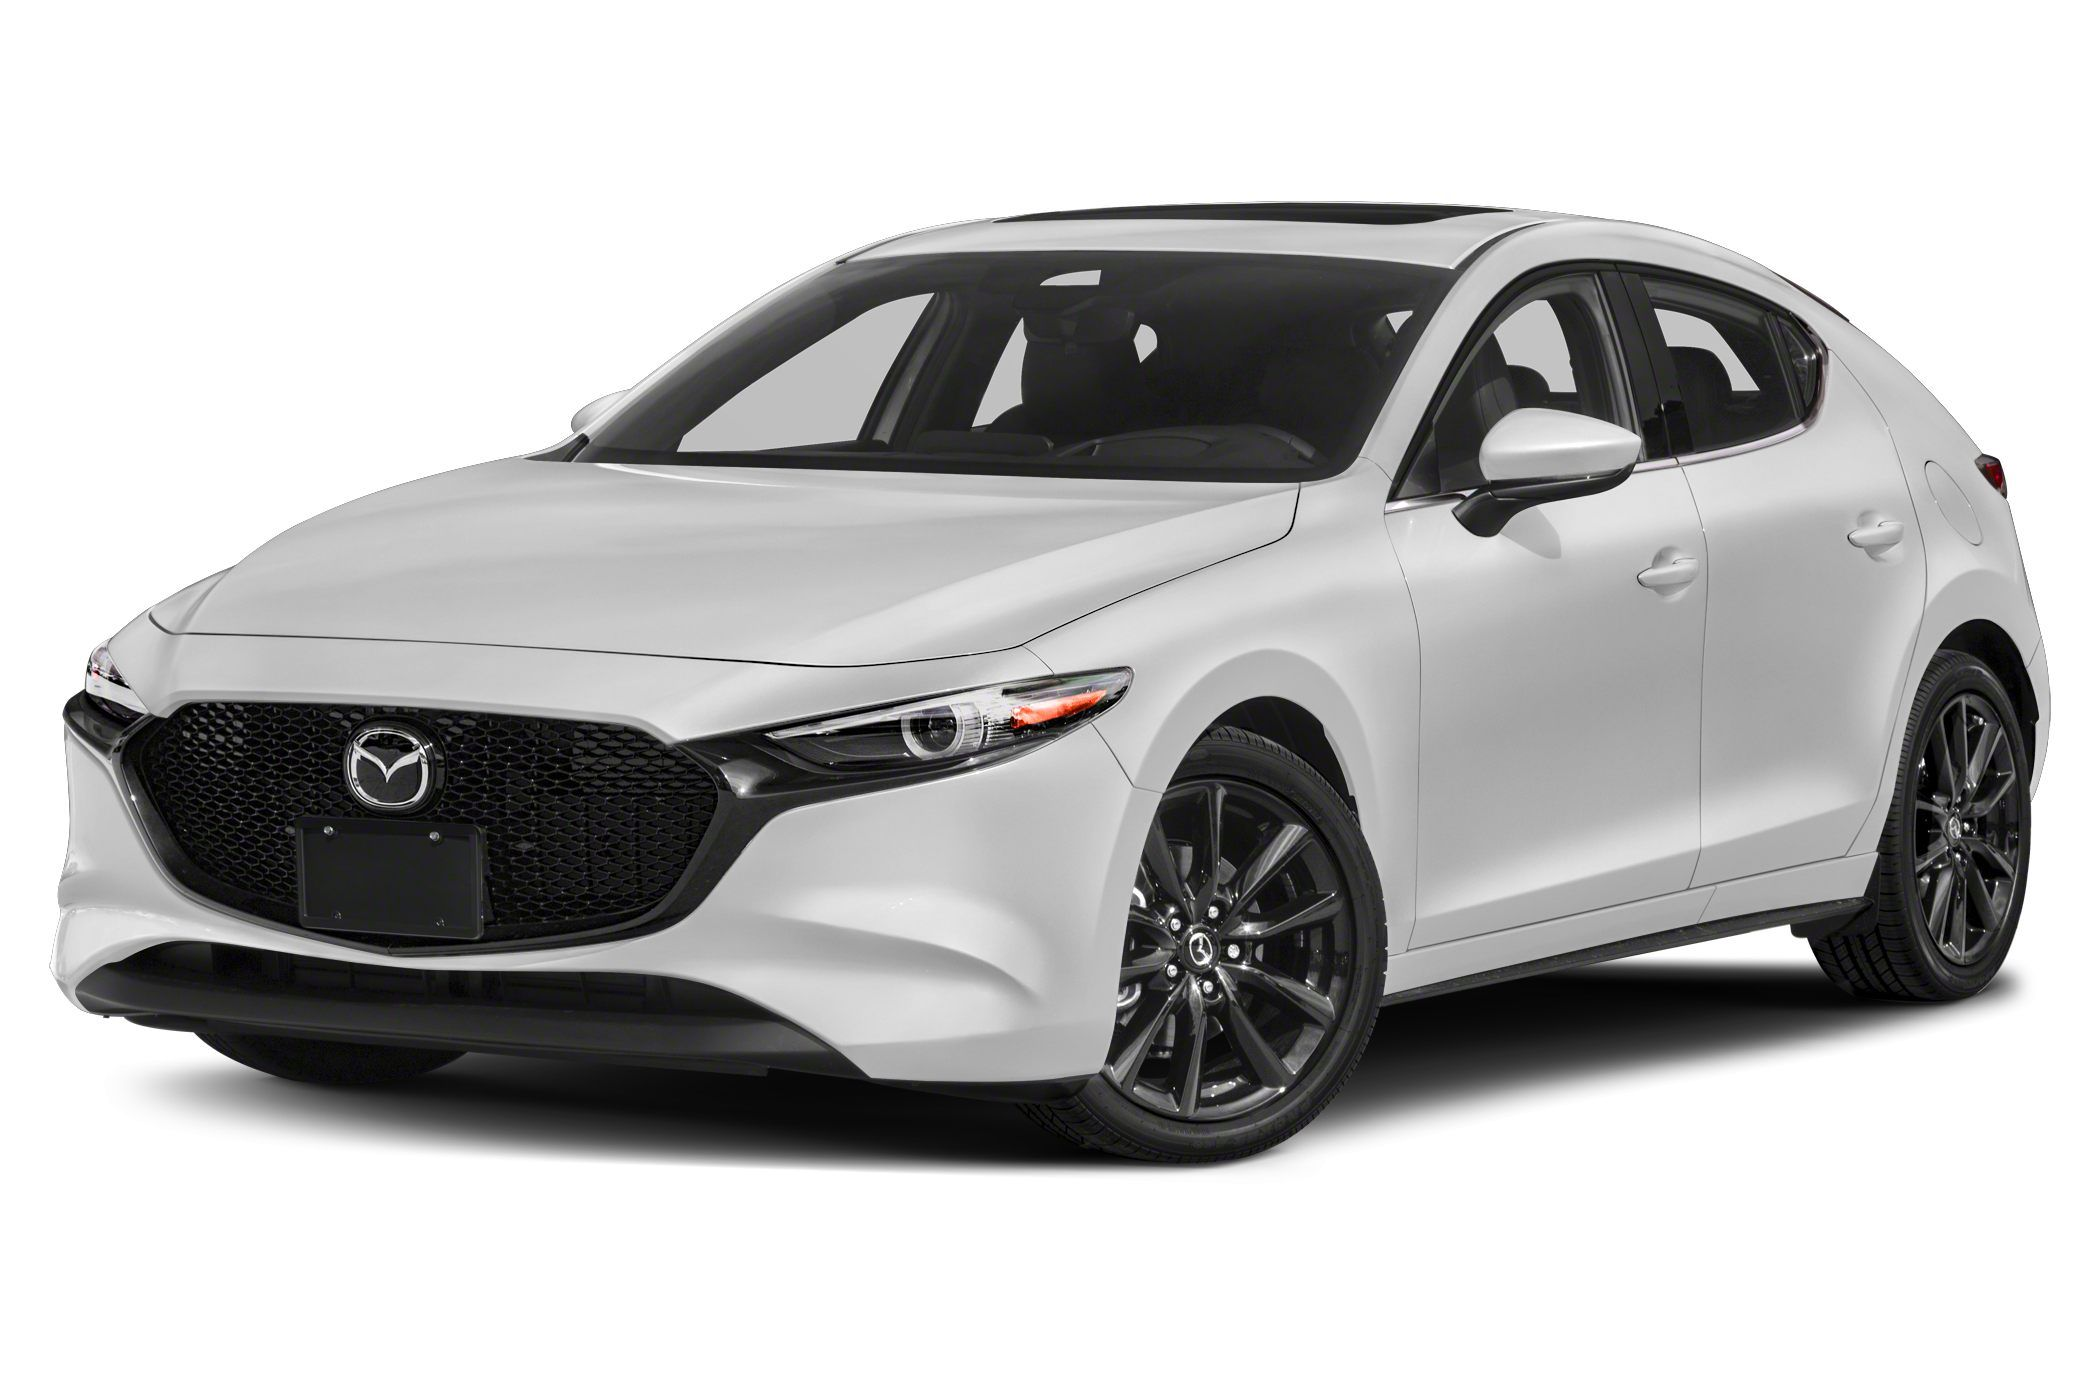 2020 Mazda 3 Turbo Review di 2020